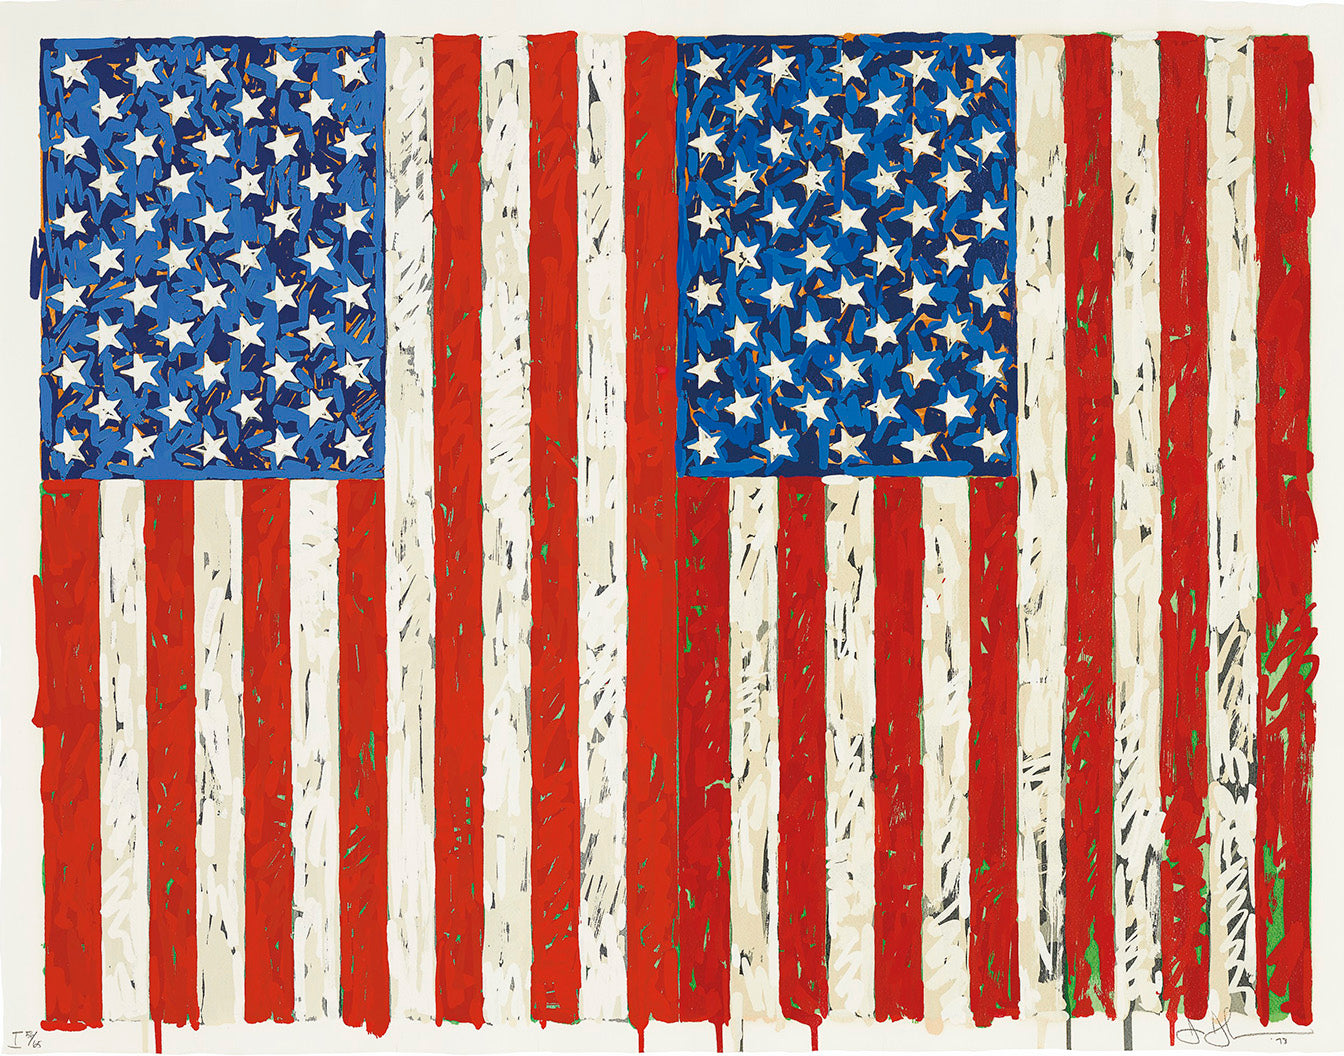 Flags 1, 1973 by JASPER JOHNS